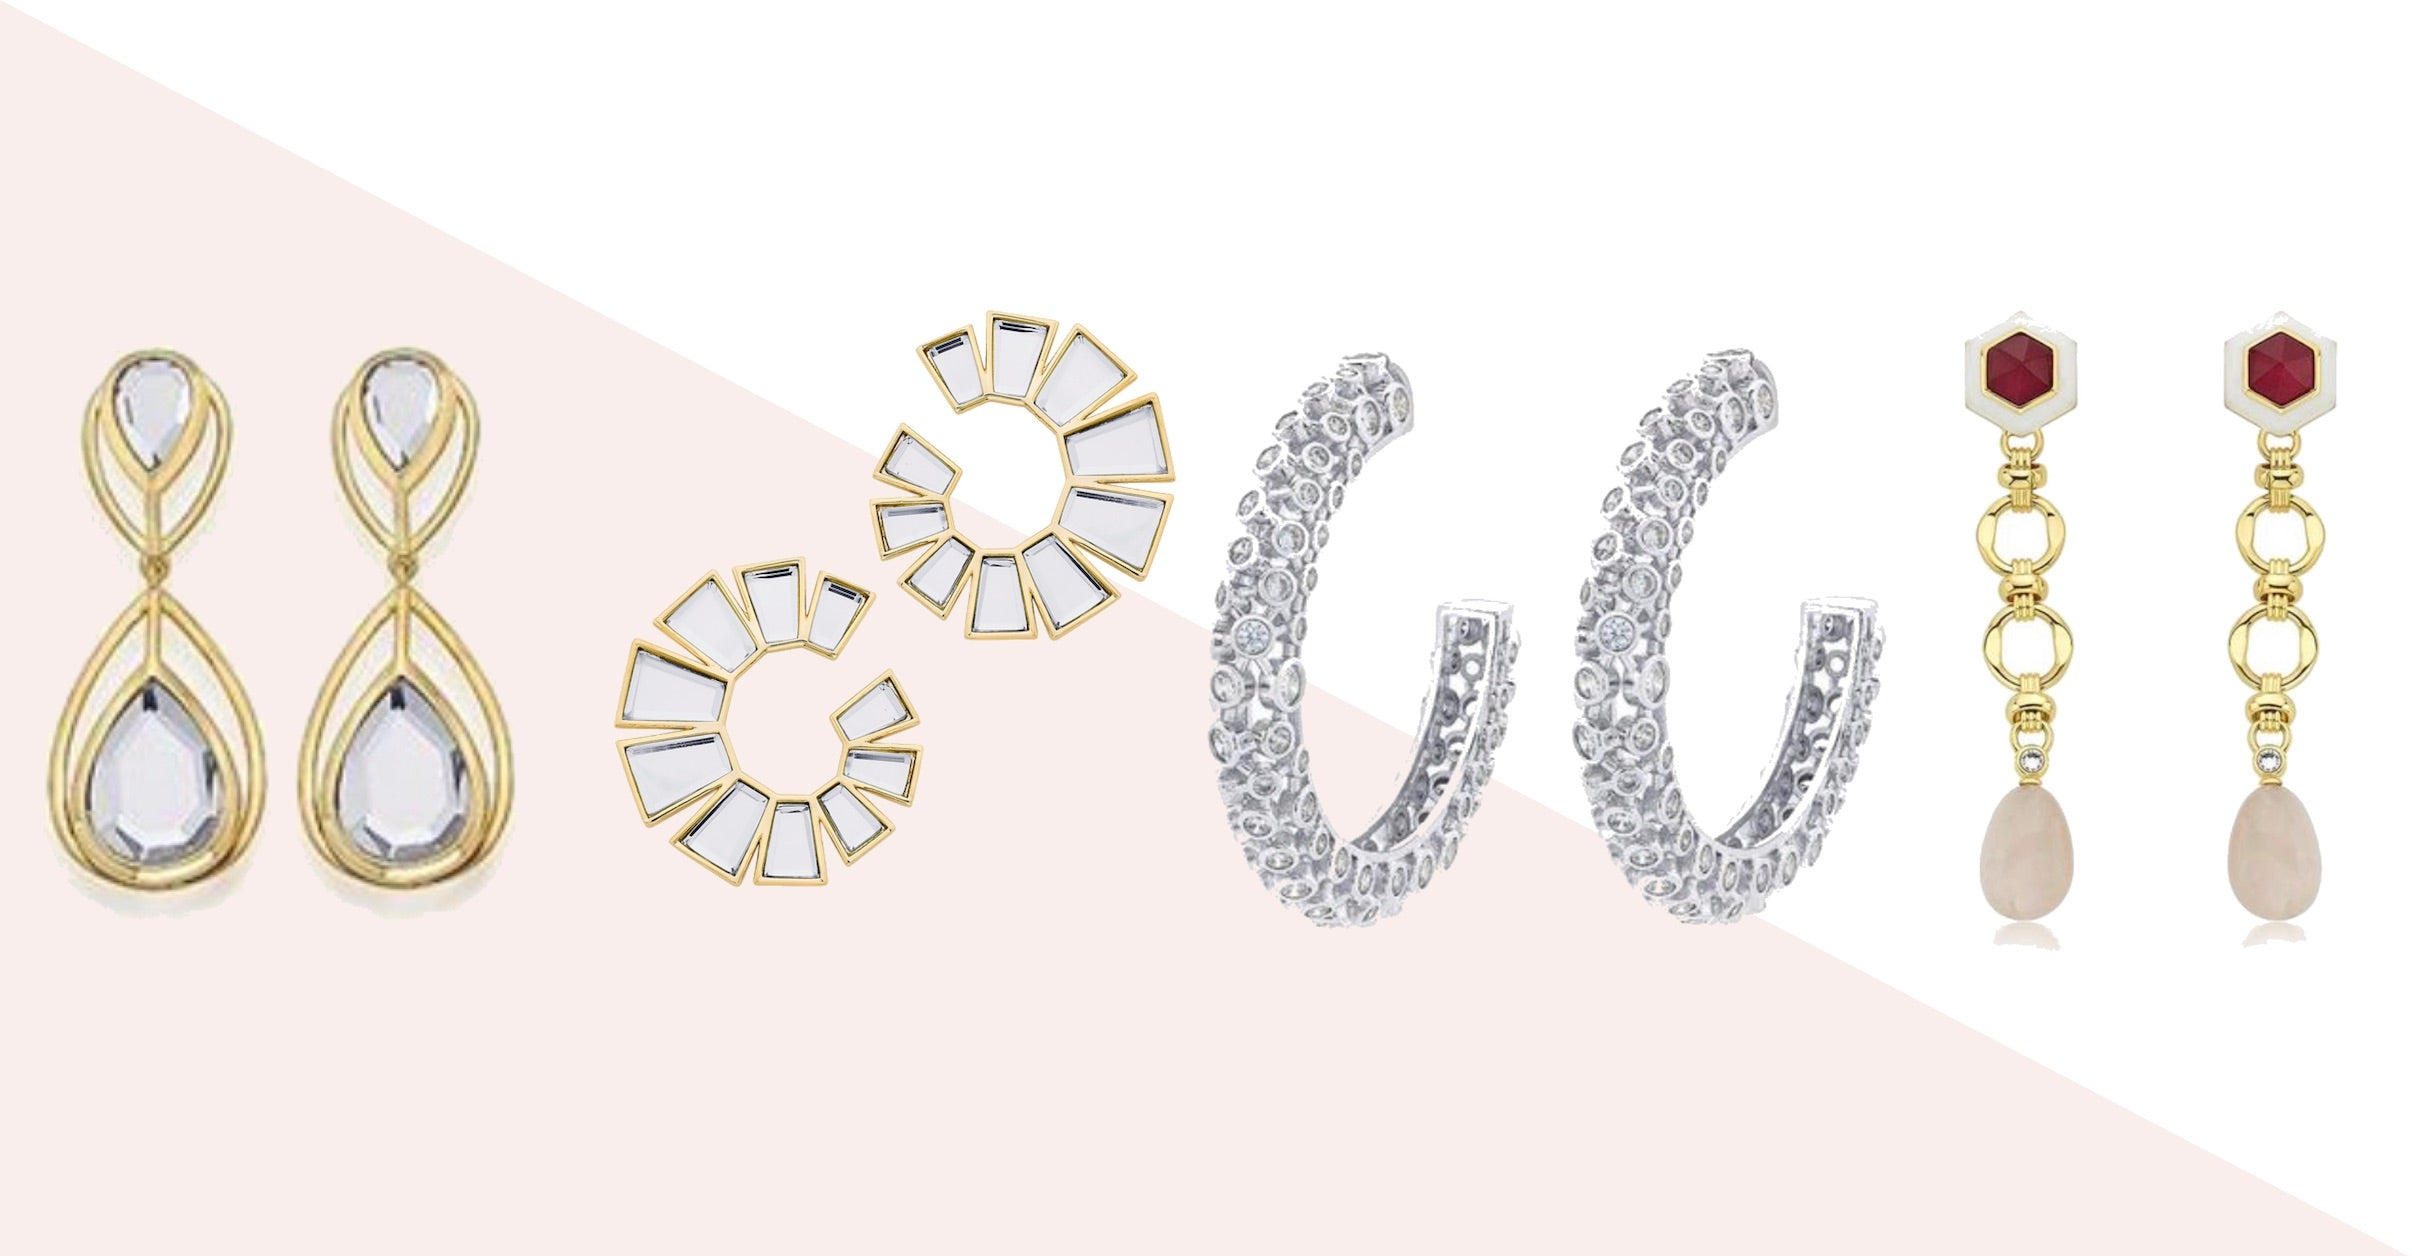 Want to find out which earrings will complement your style best?